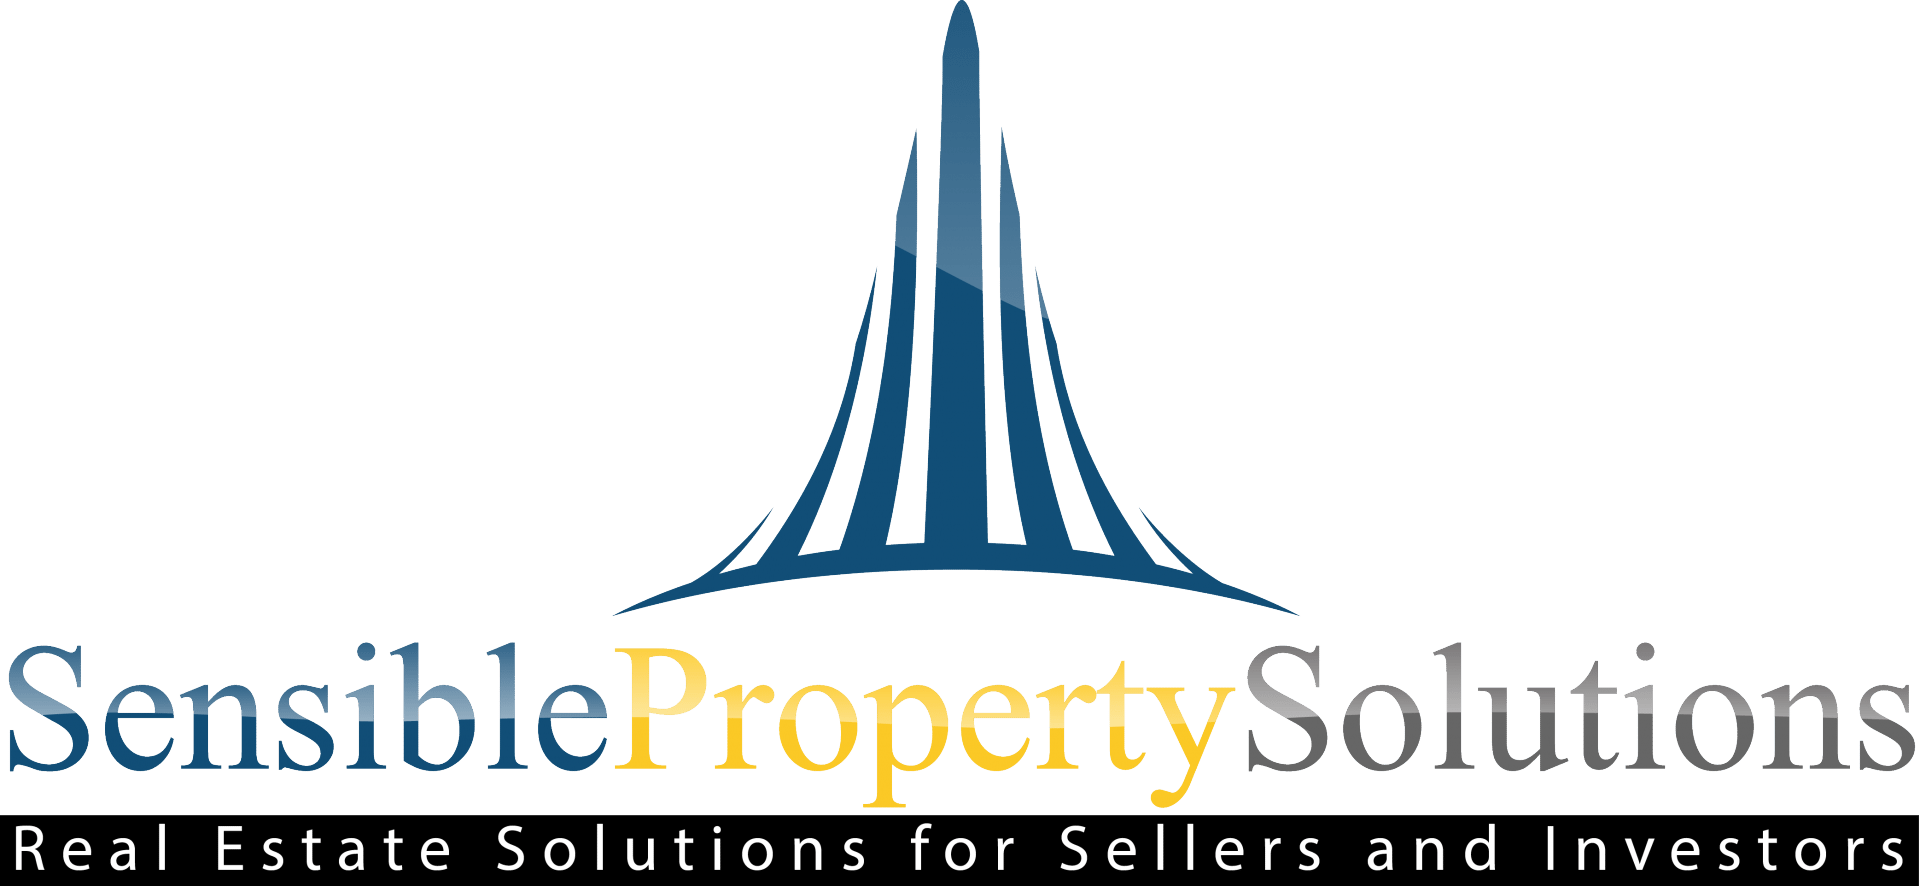 Sensible Property Solutions